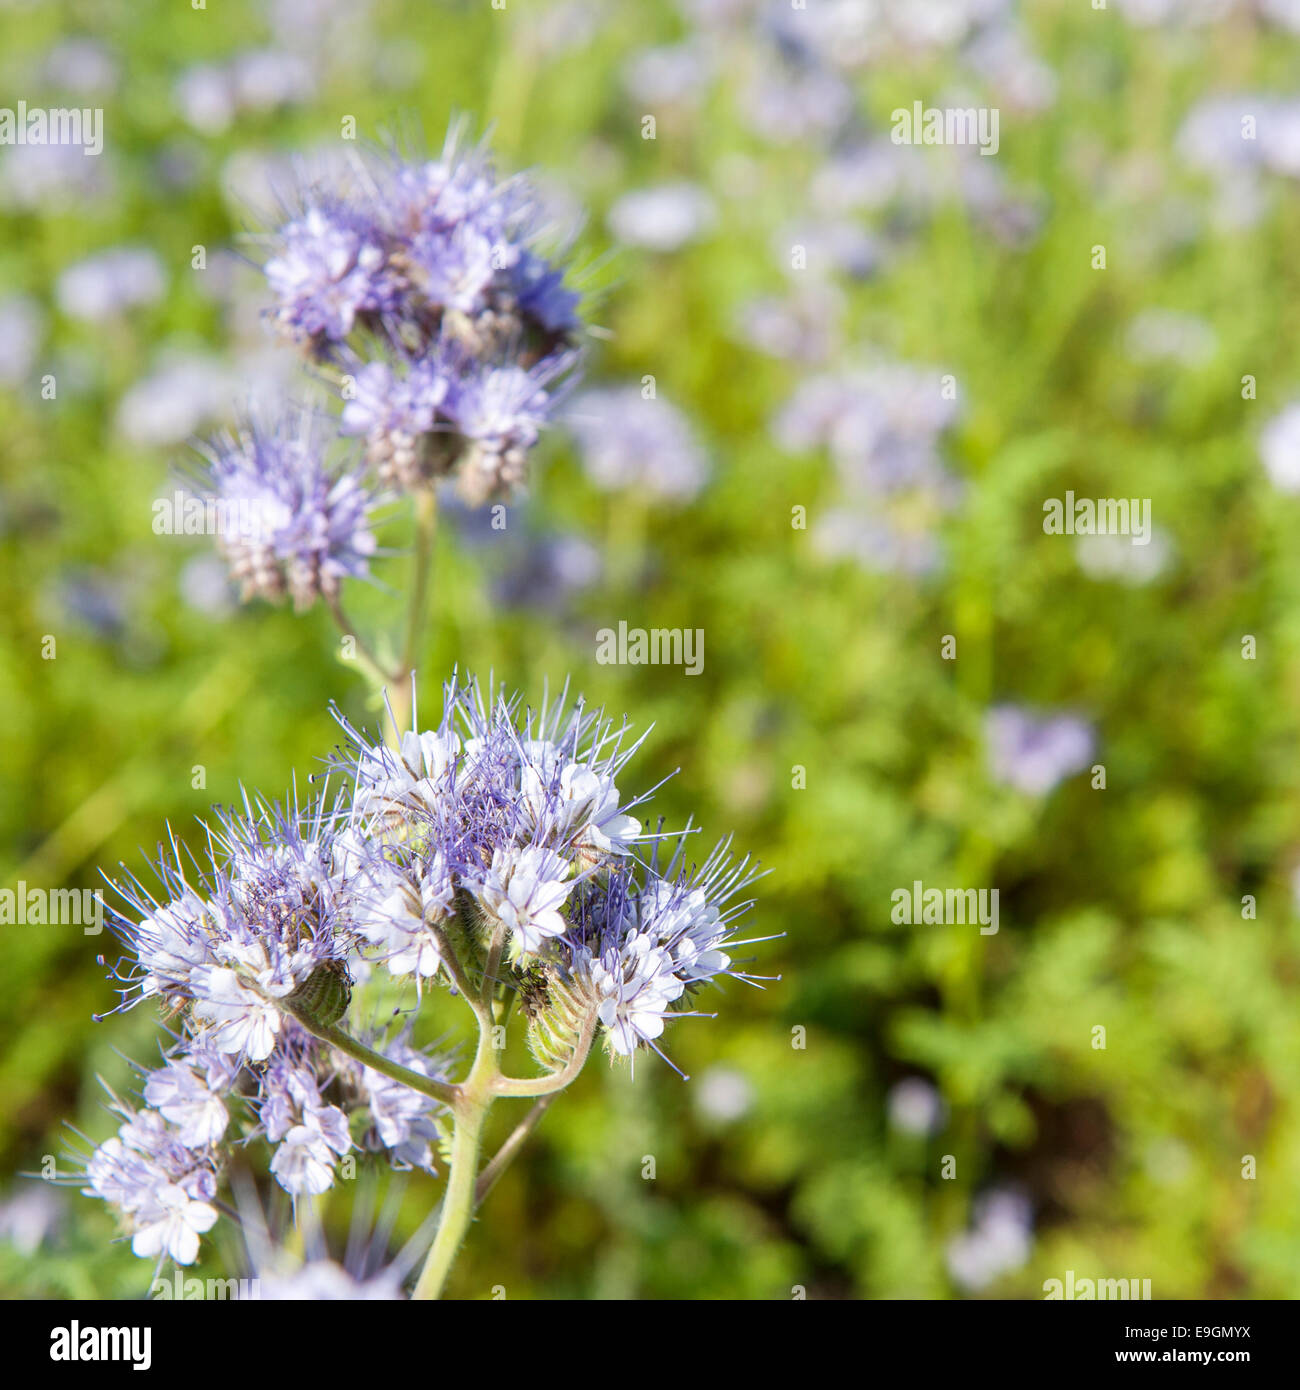 Light blue wildflower in close up against green foliage - Stock Image